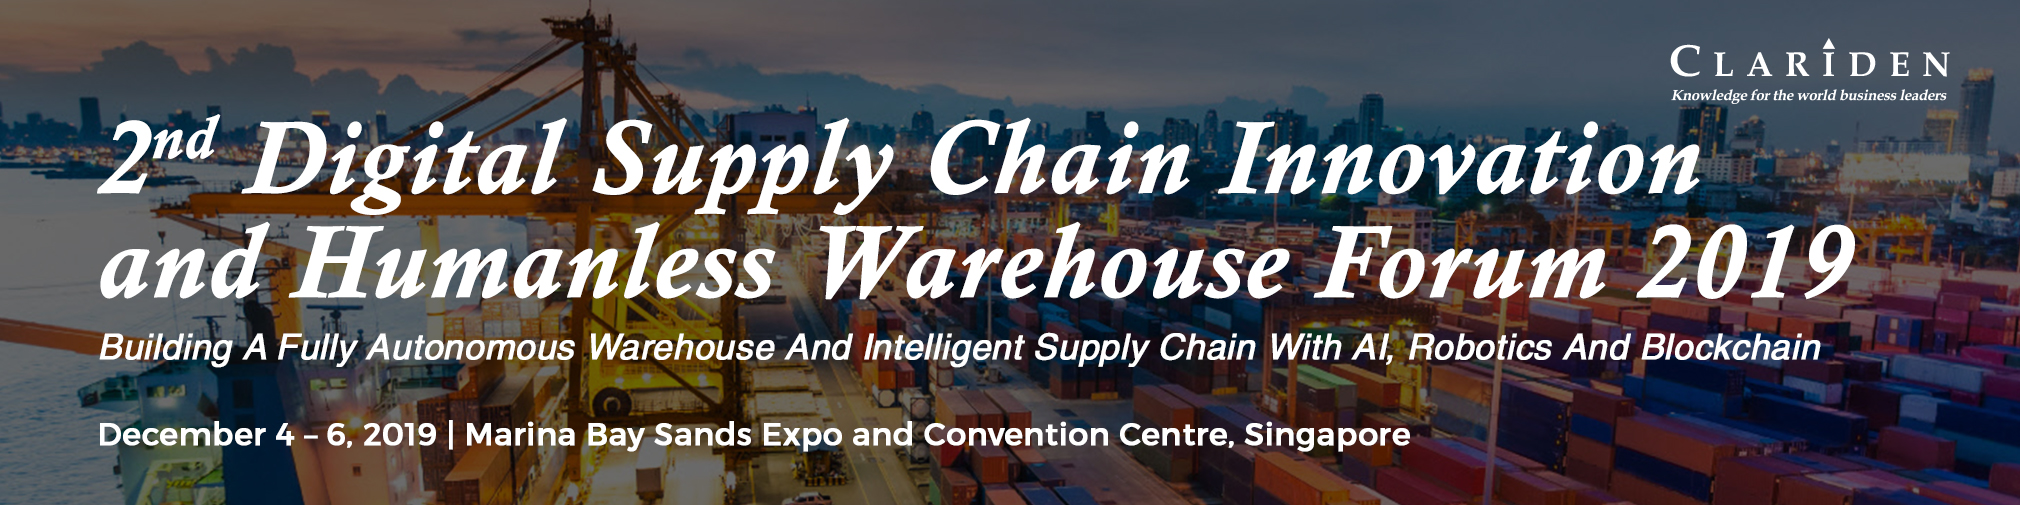 2nd Digital Supply Chain Innovation and Humanless